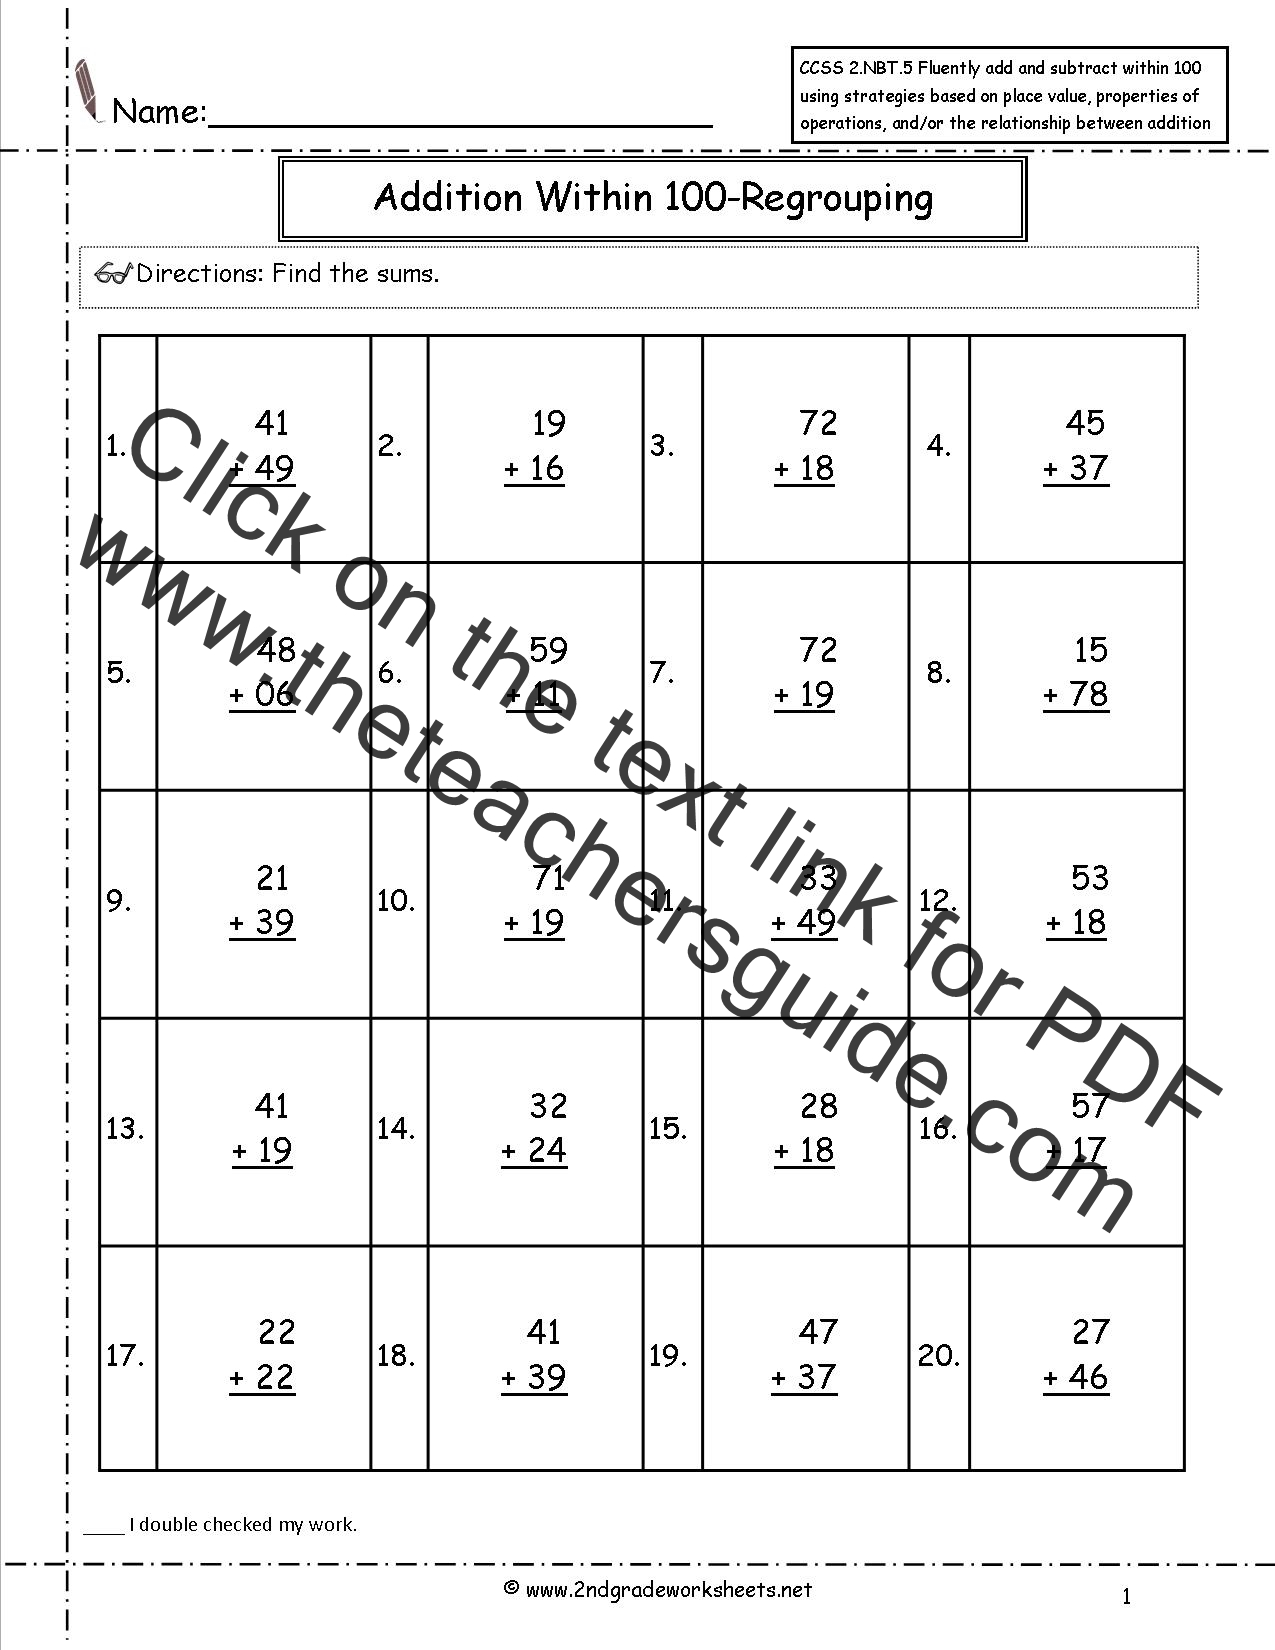 ccss 2 nbt 5 worksheets two digit addition and subtraction within 100 worksheets. Black Bedroom Furniture Sets. Home Design Ideas